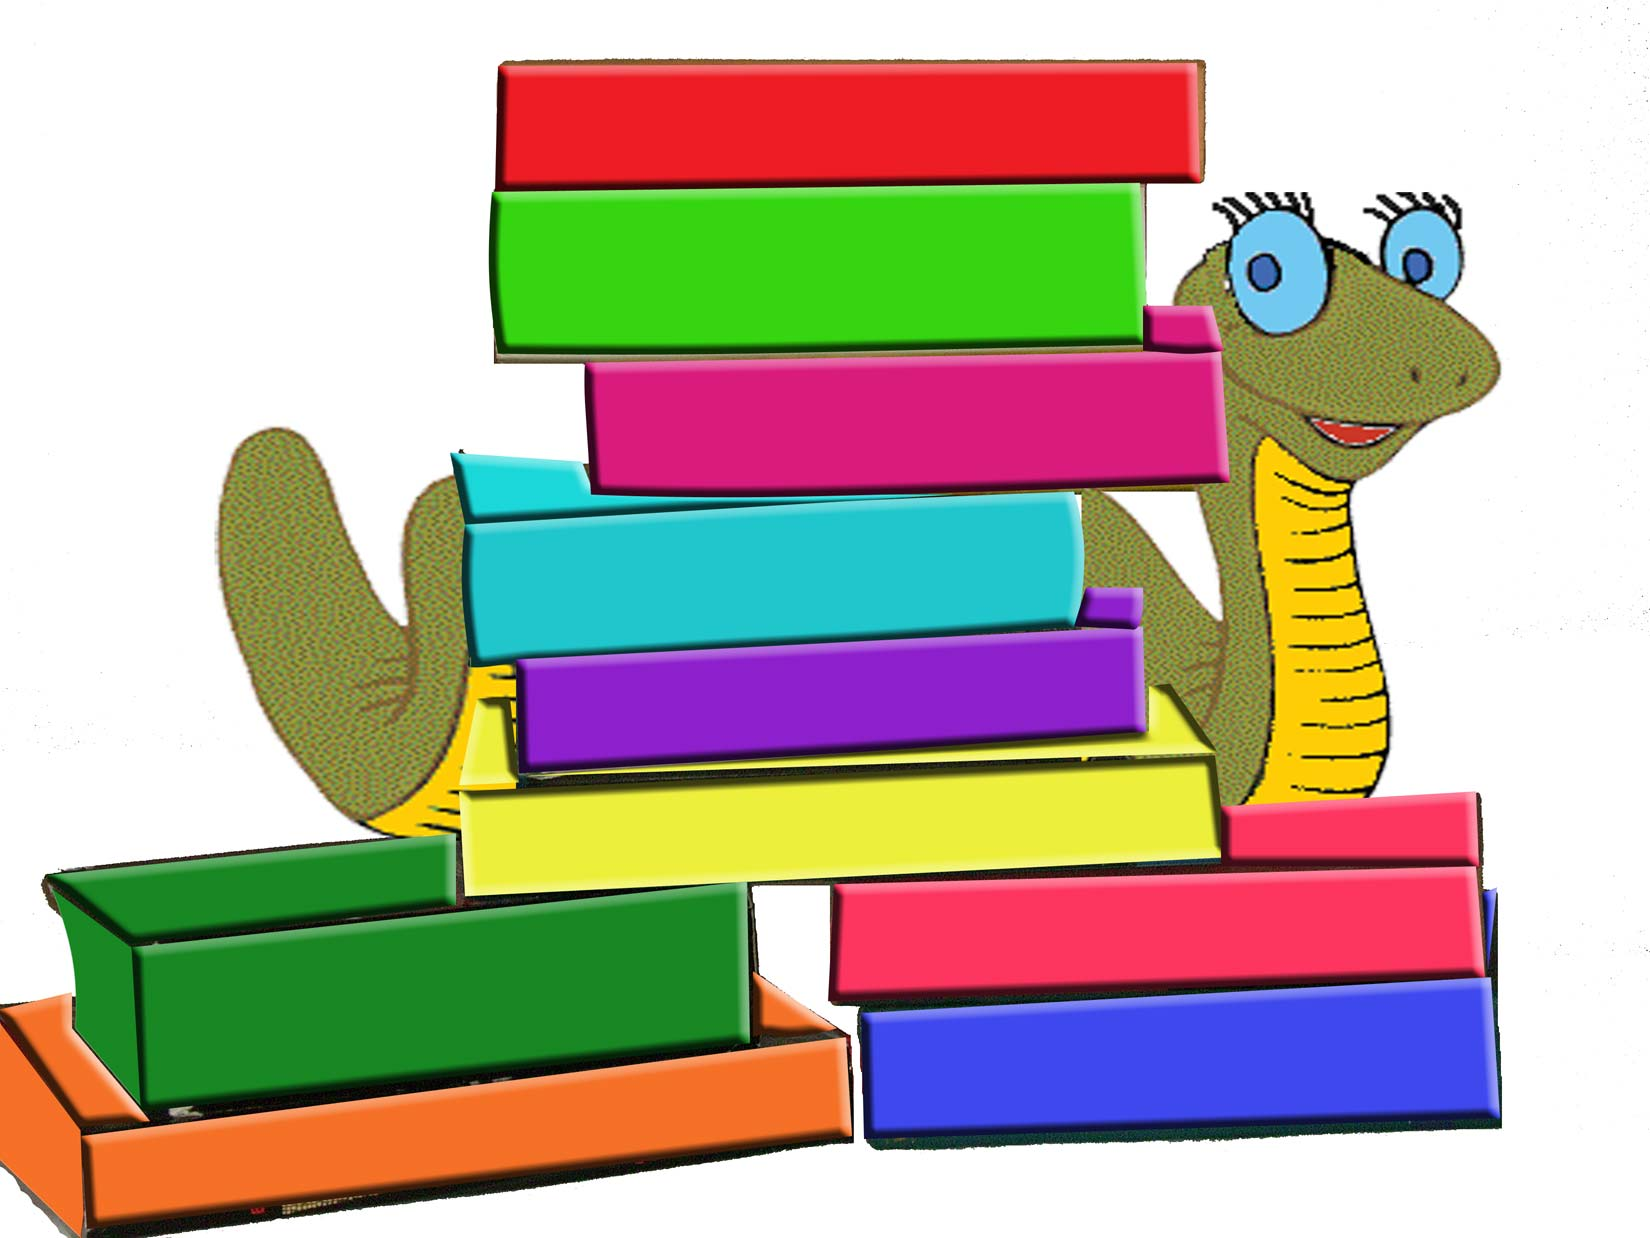 hight resolution of clip art stack of books clipart 2